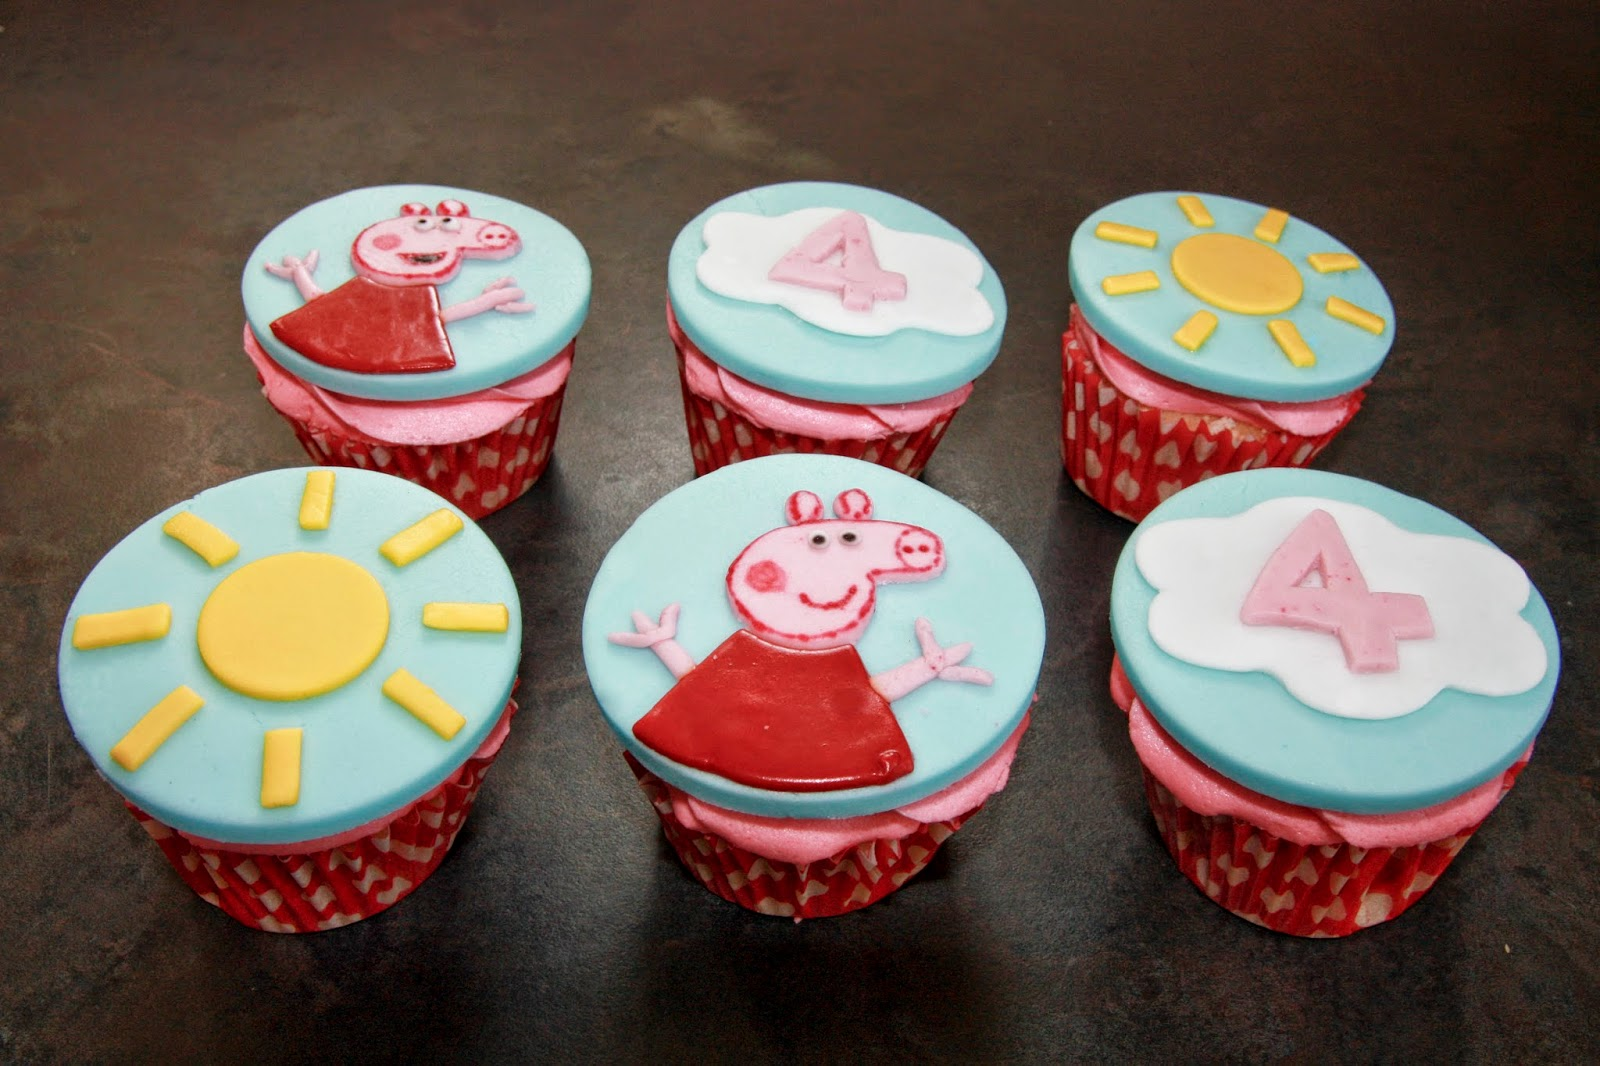 6 Peppa Pig cupcakes - 2 Peppa Pig, 2 suns and 2 clouds with the number 4